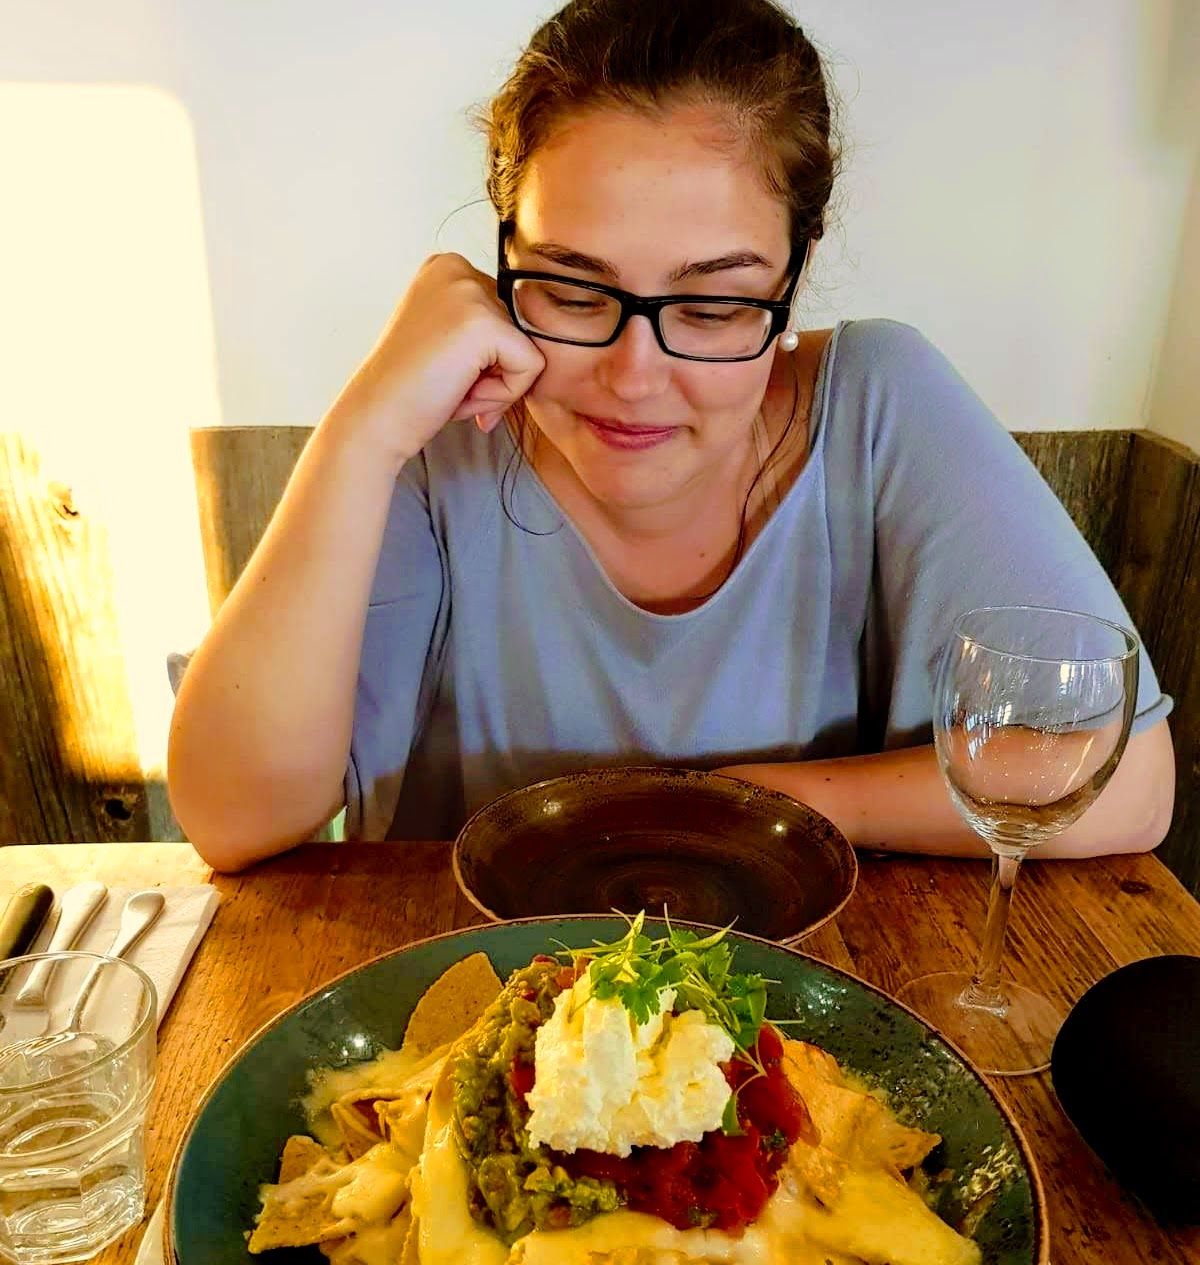 Woman looking longingly at a plate of nachos